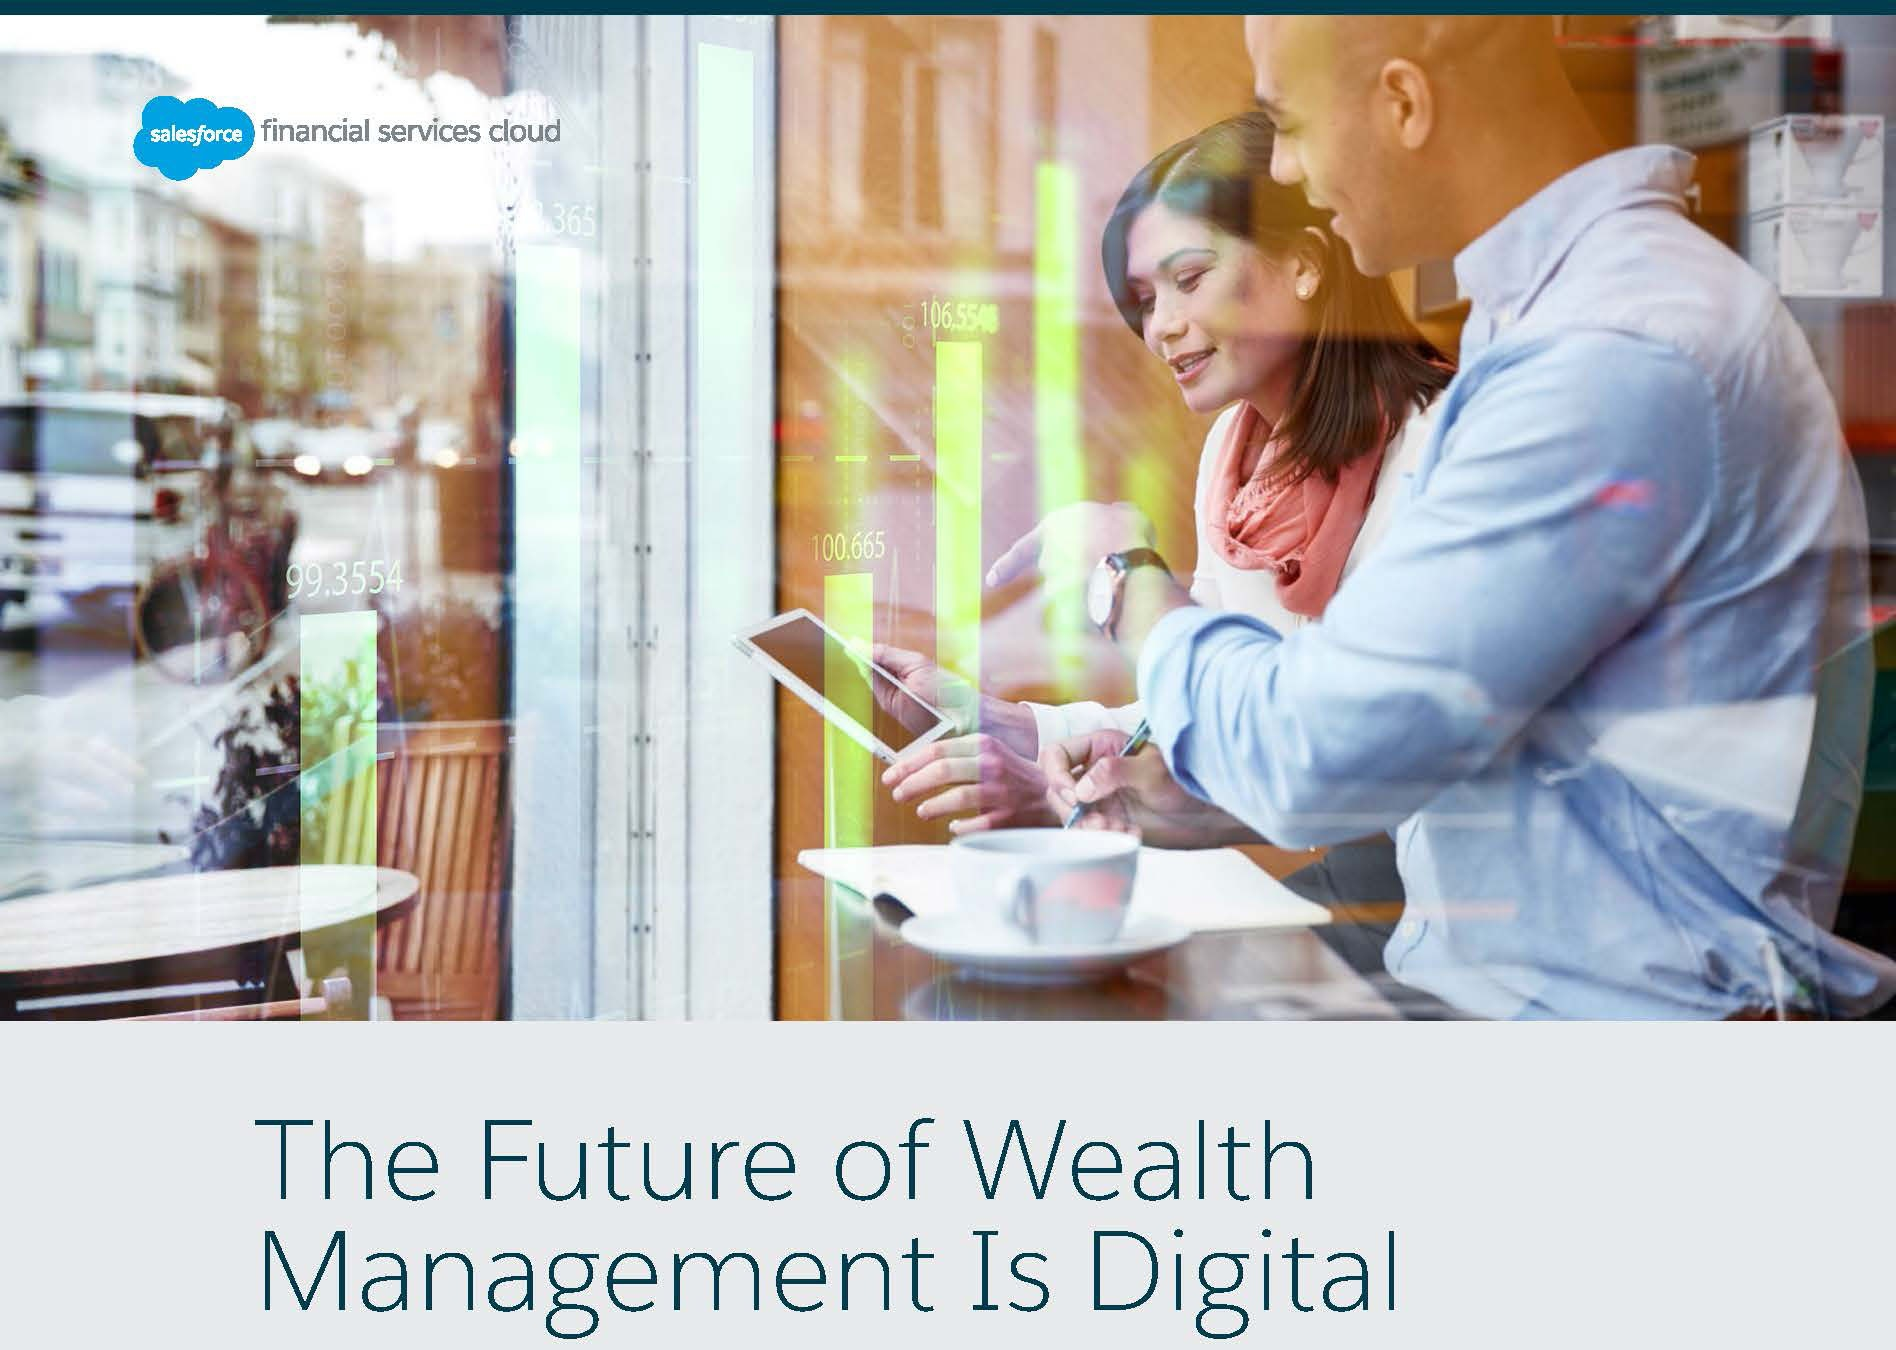 the-future-of-wealth-management-is-digital_Page_1 REV